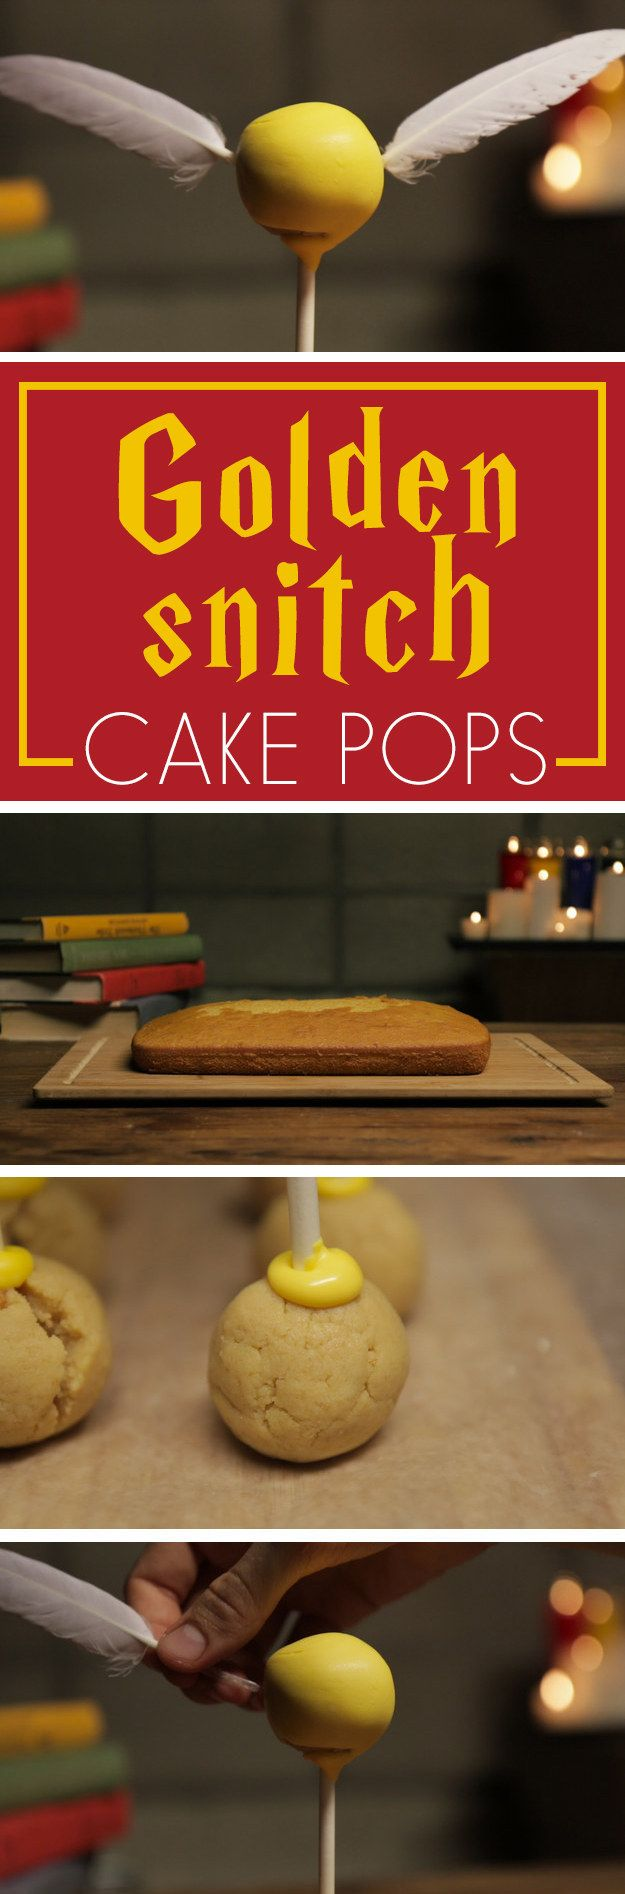 Make These Golden Snitch Cake Pops For Harry Potter's Birthday